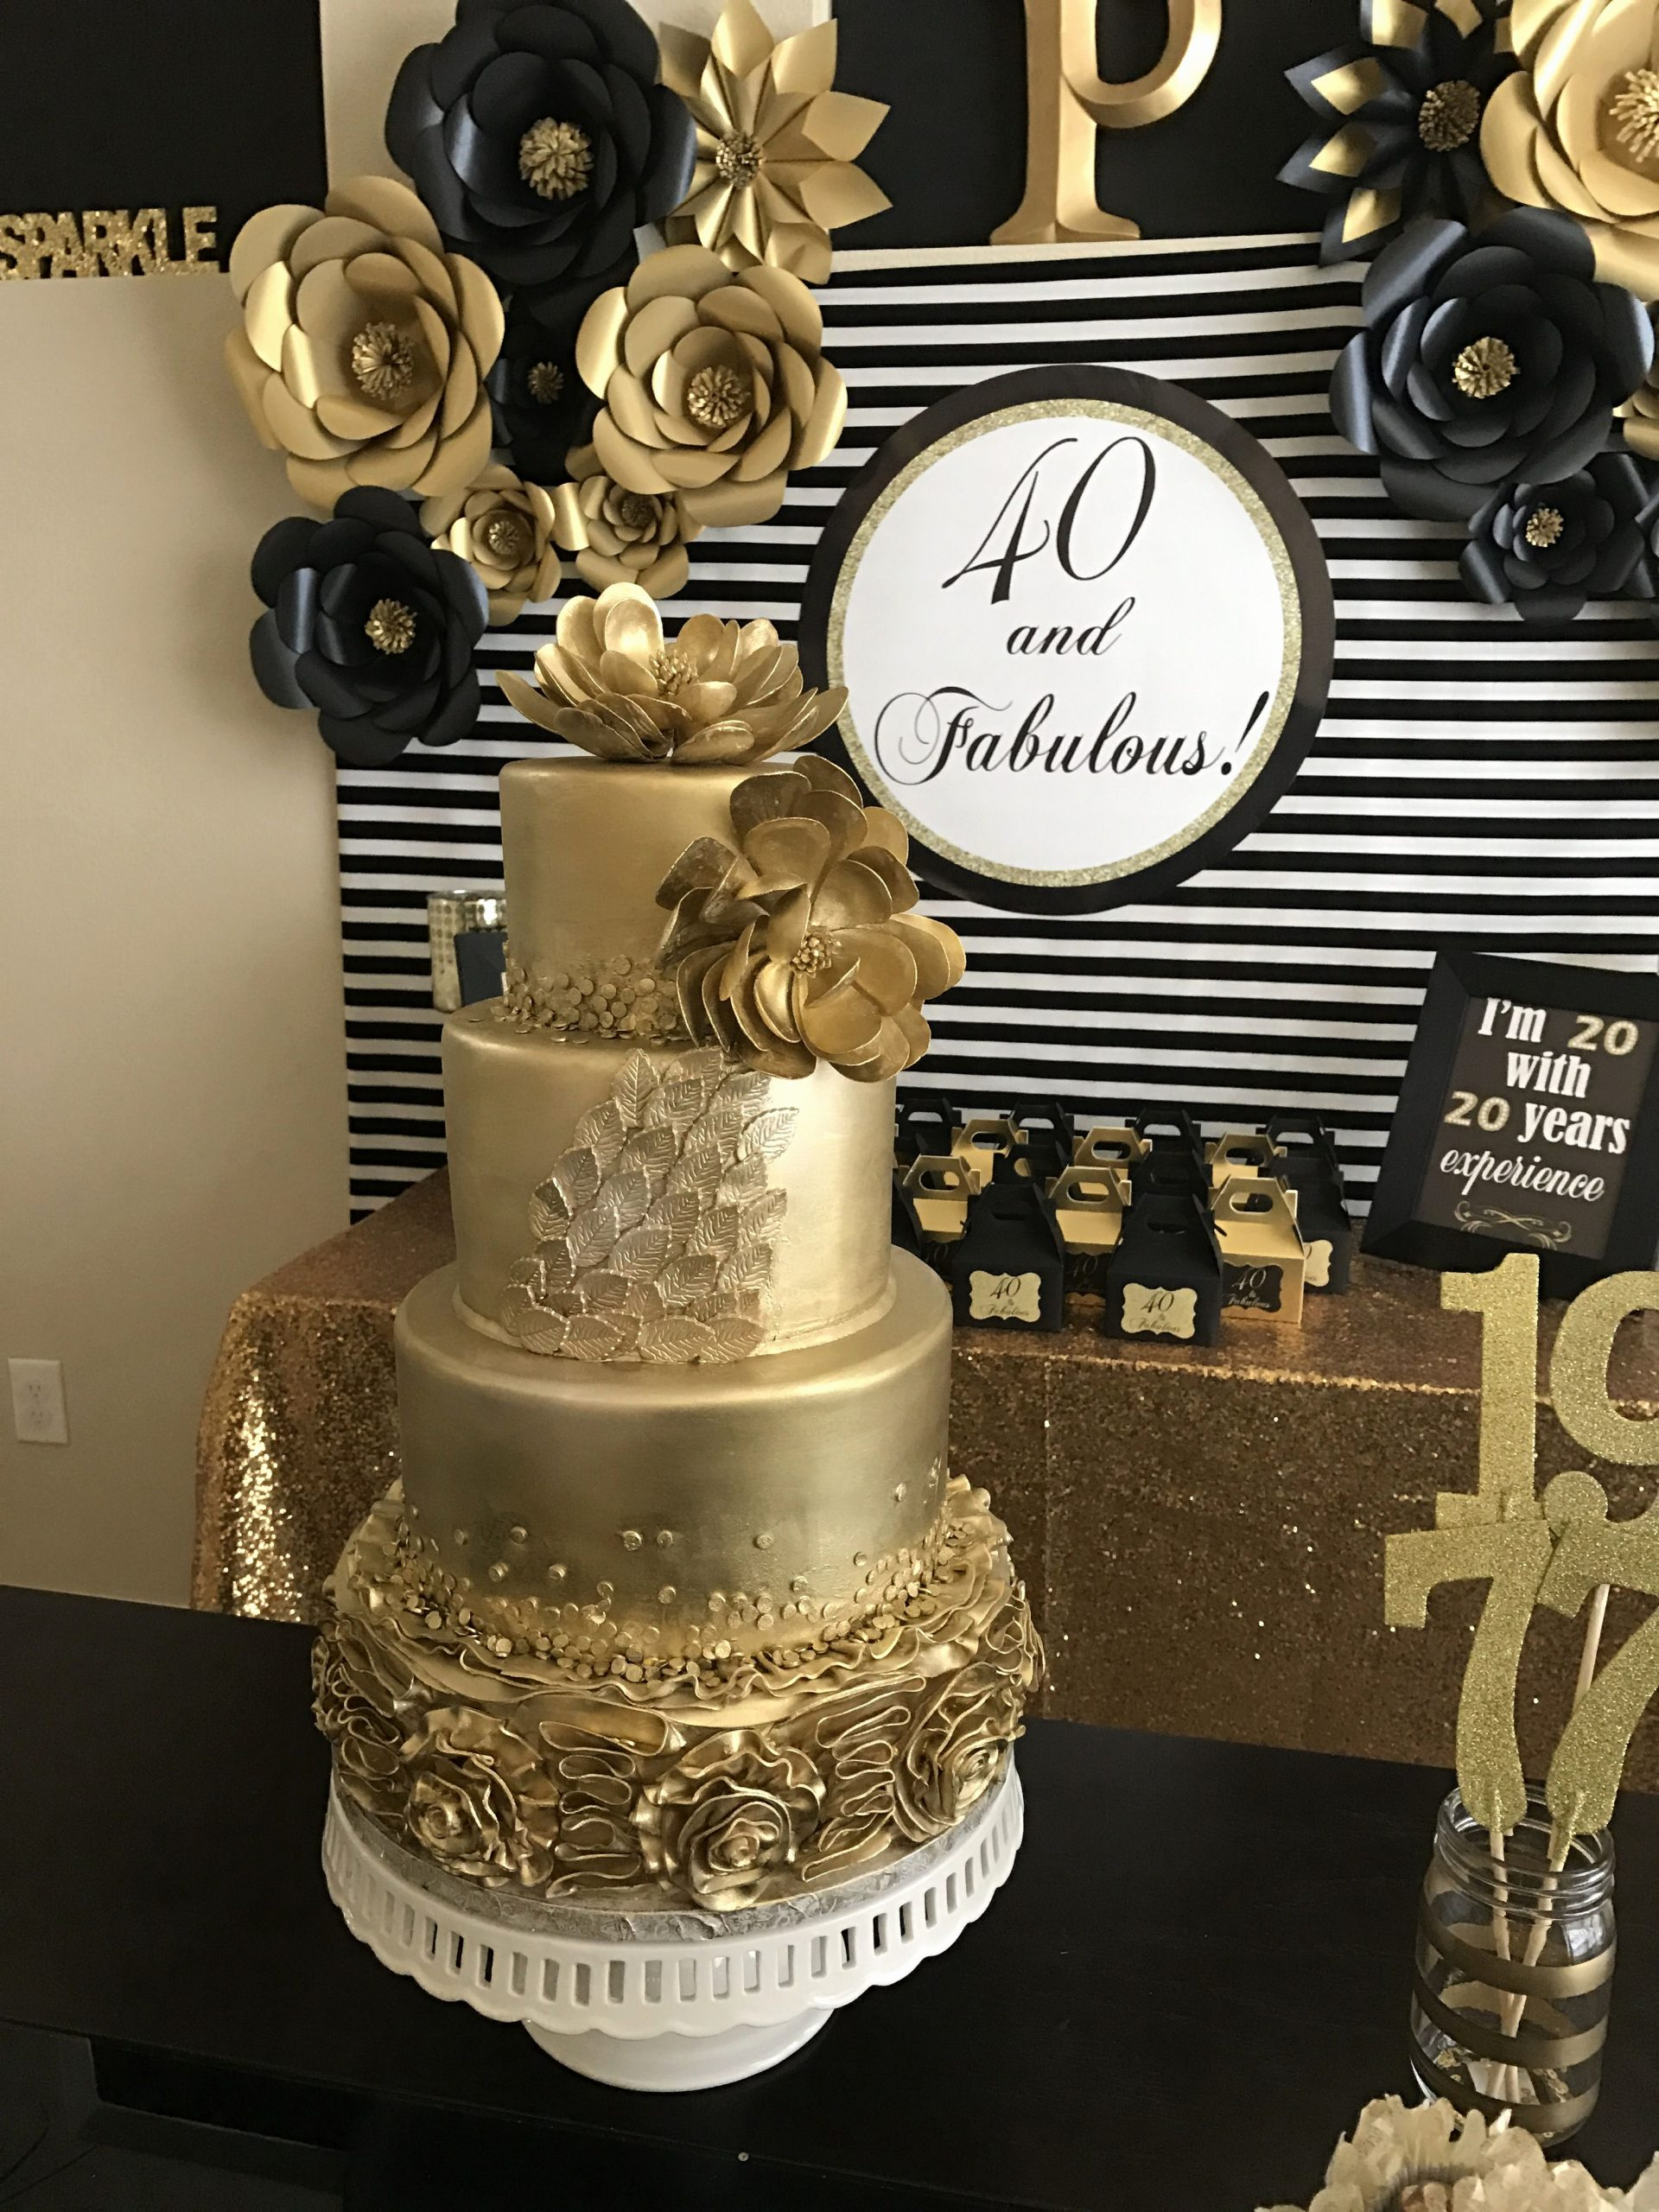 40 Year Birthday Decoration Ideas New Gold Cake 40 and Fabulous